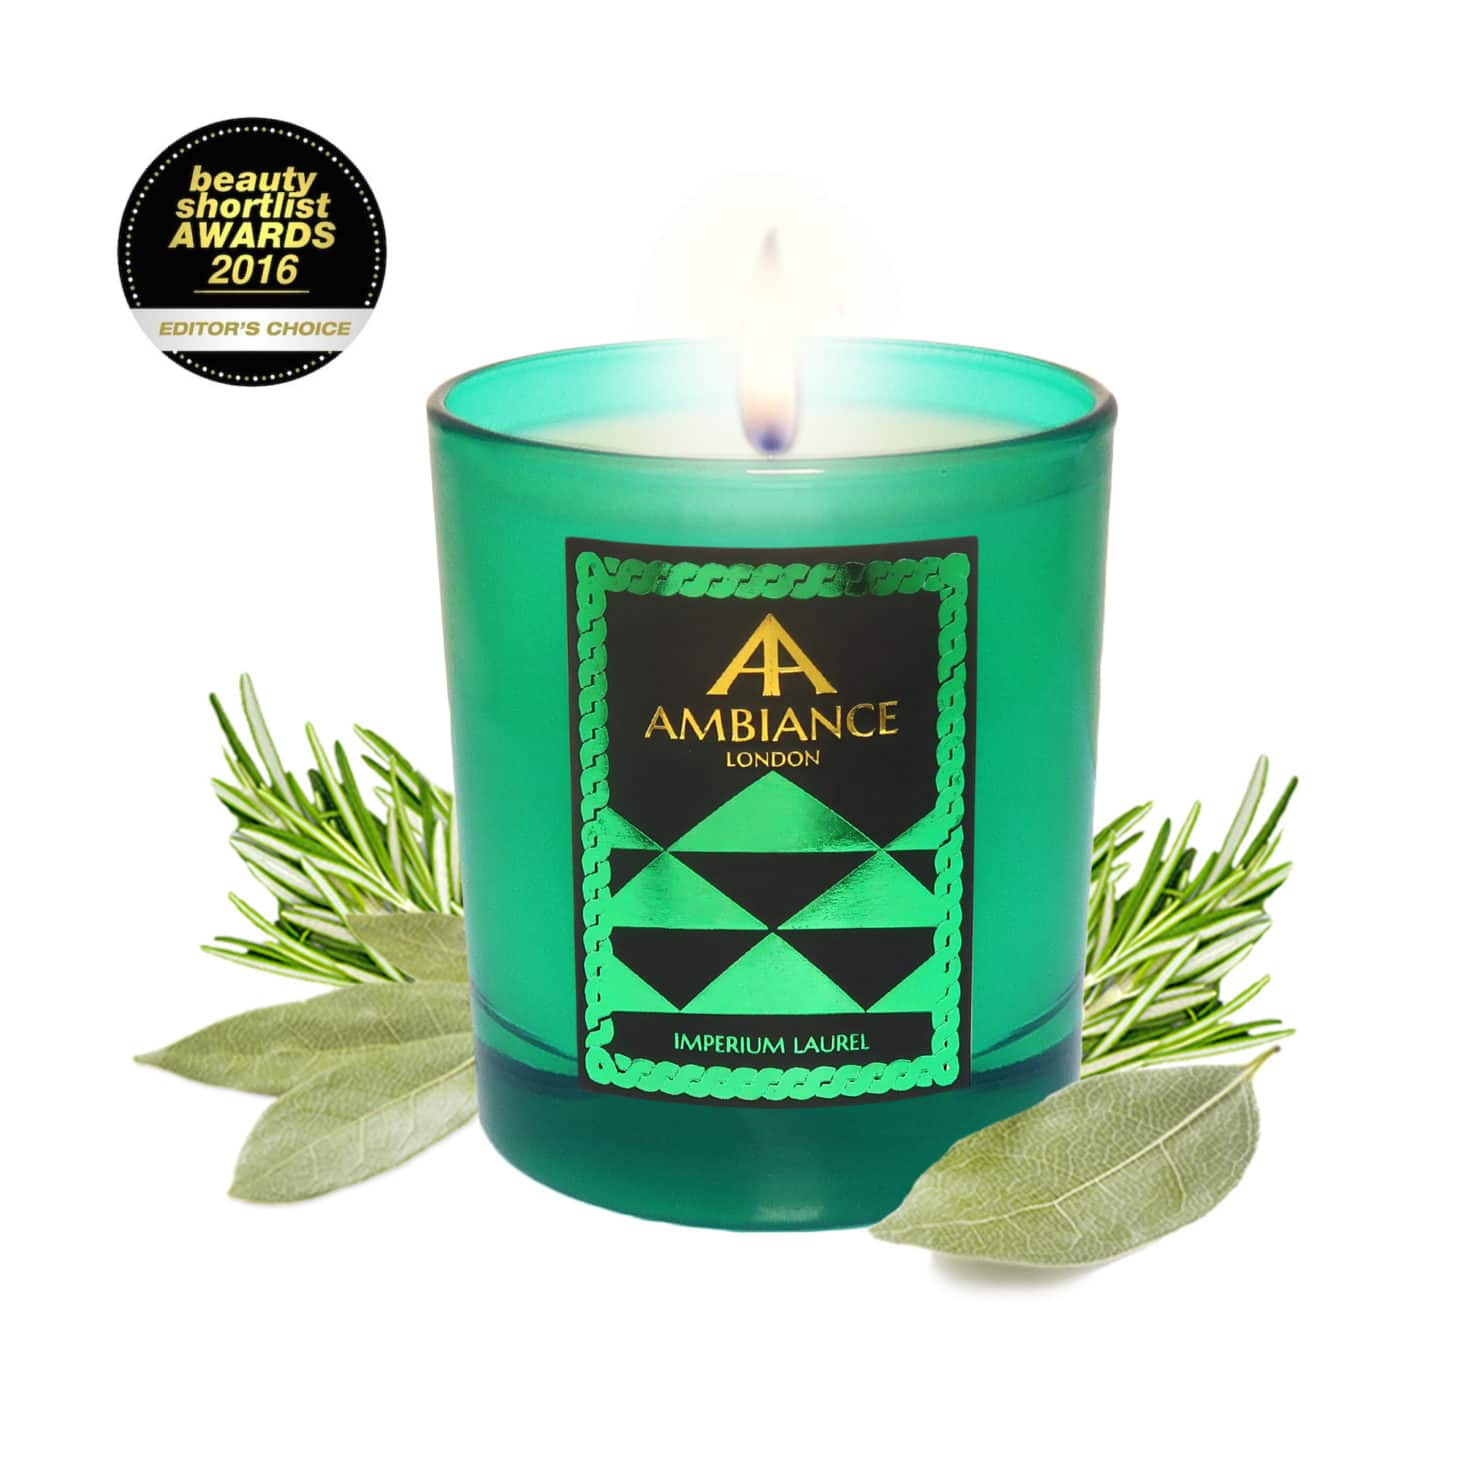 ancienne ambiance Imperium Laurel luxury scented candle - limited edition - beauty short list awards